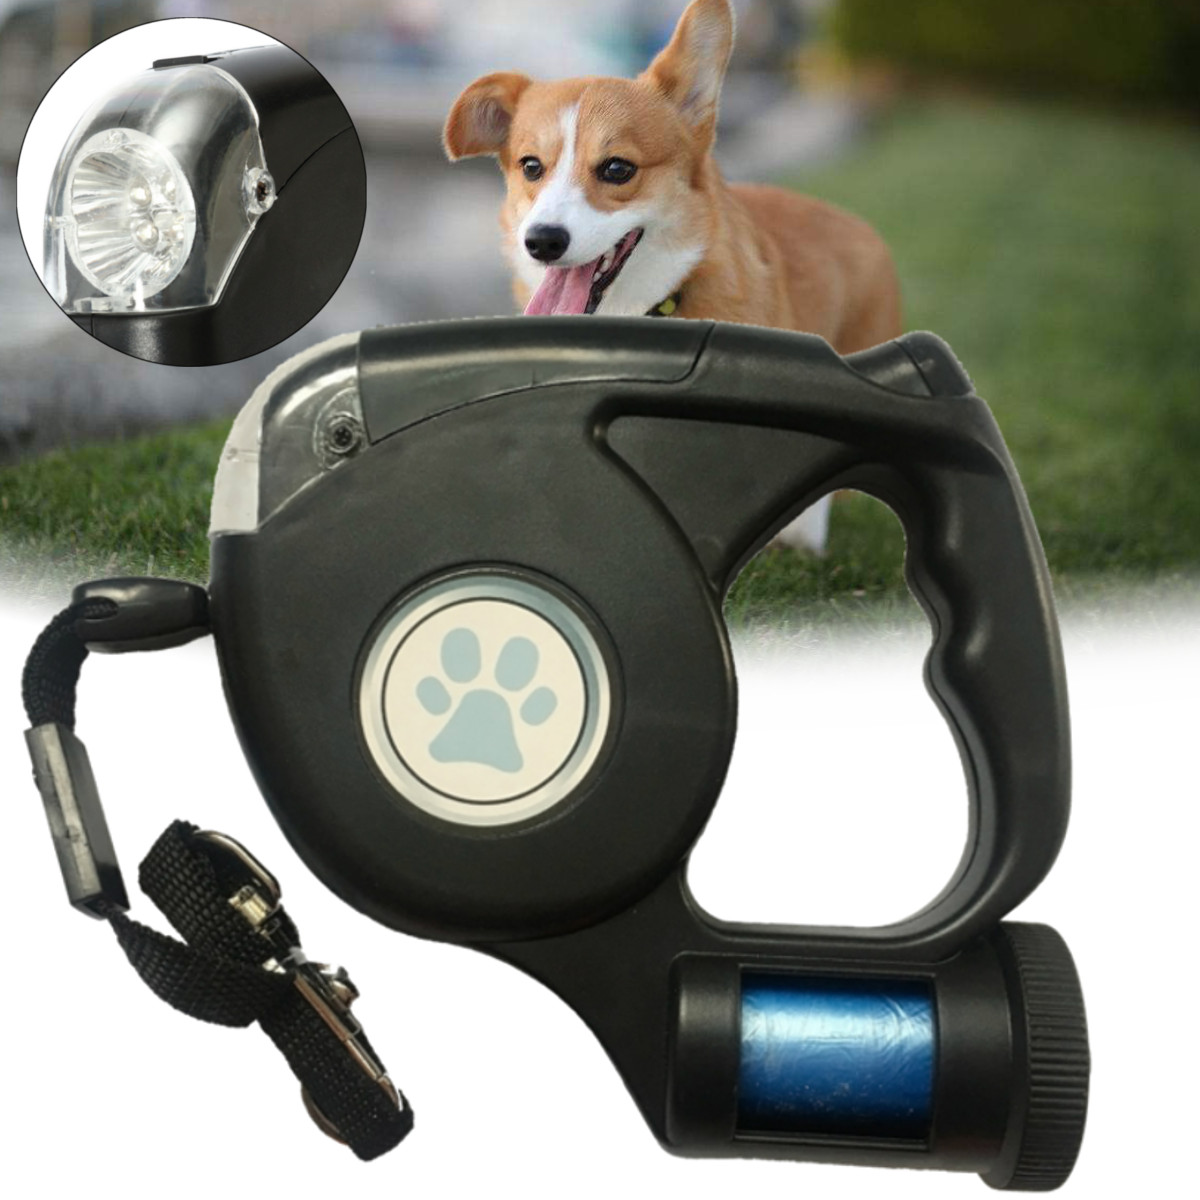 Moaere 4.5M Retractable Dog Leash  Walking Leash with Detachable Flashlight LED Torch Large Dogs up to 110lbs